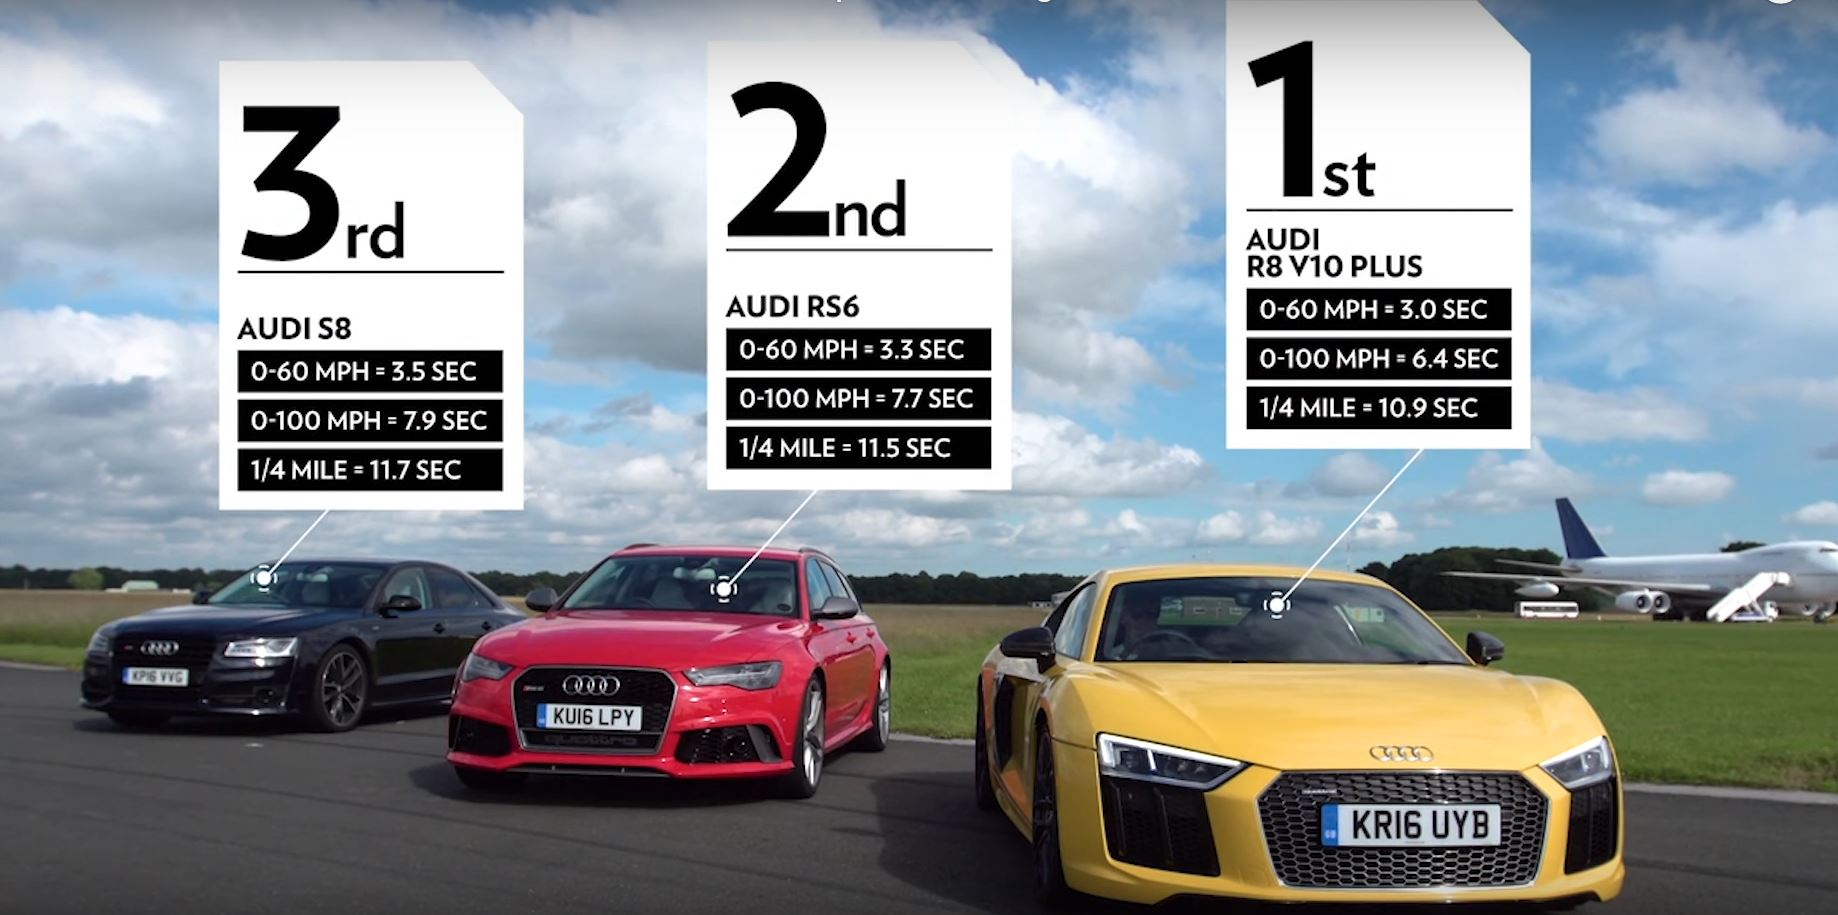 Audi R8 V10 Plus Vs Rs6 S8 The Lord Of Rings